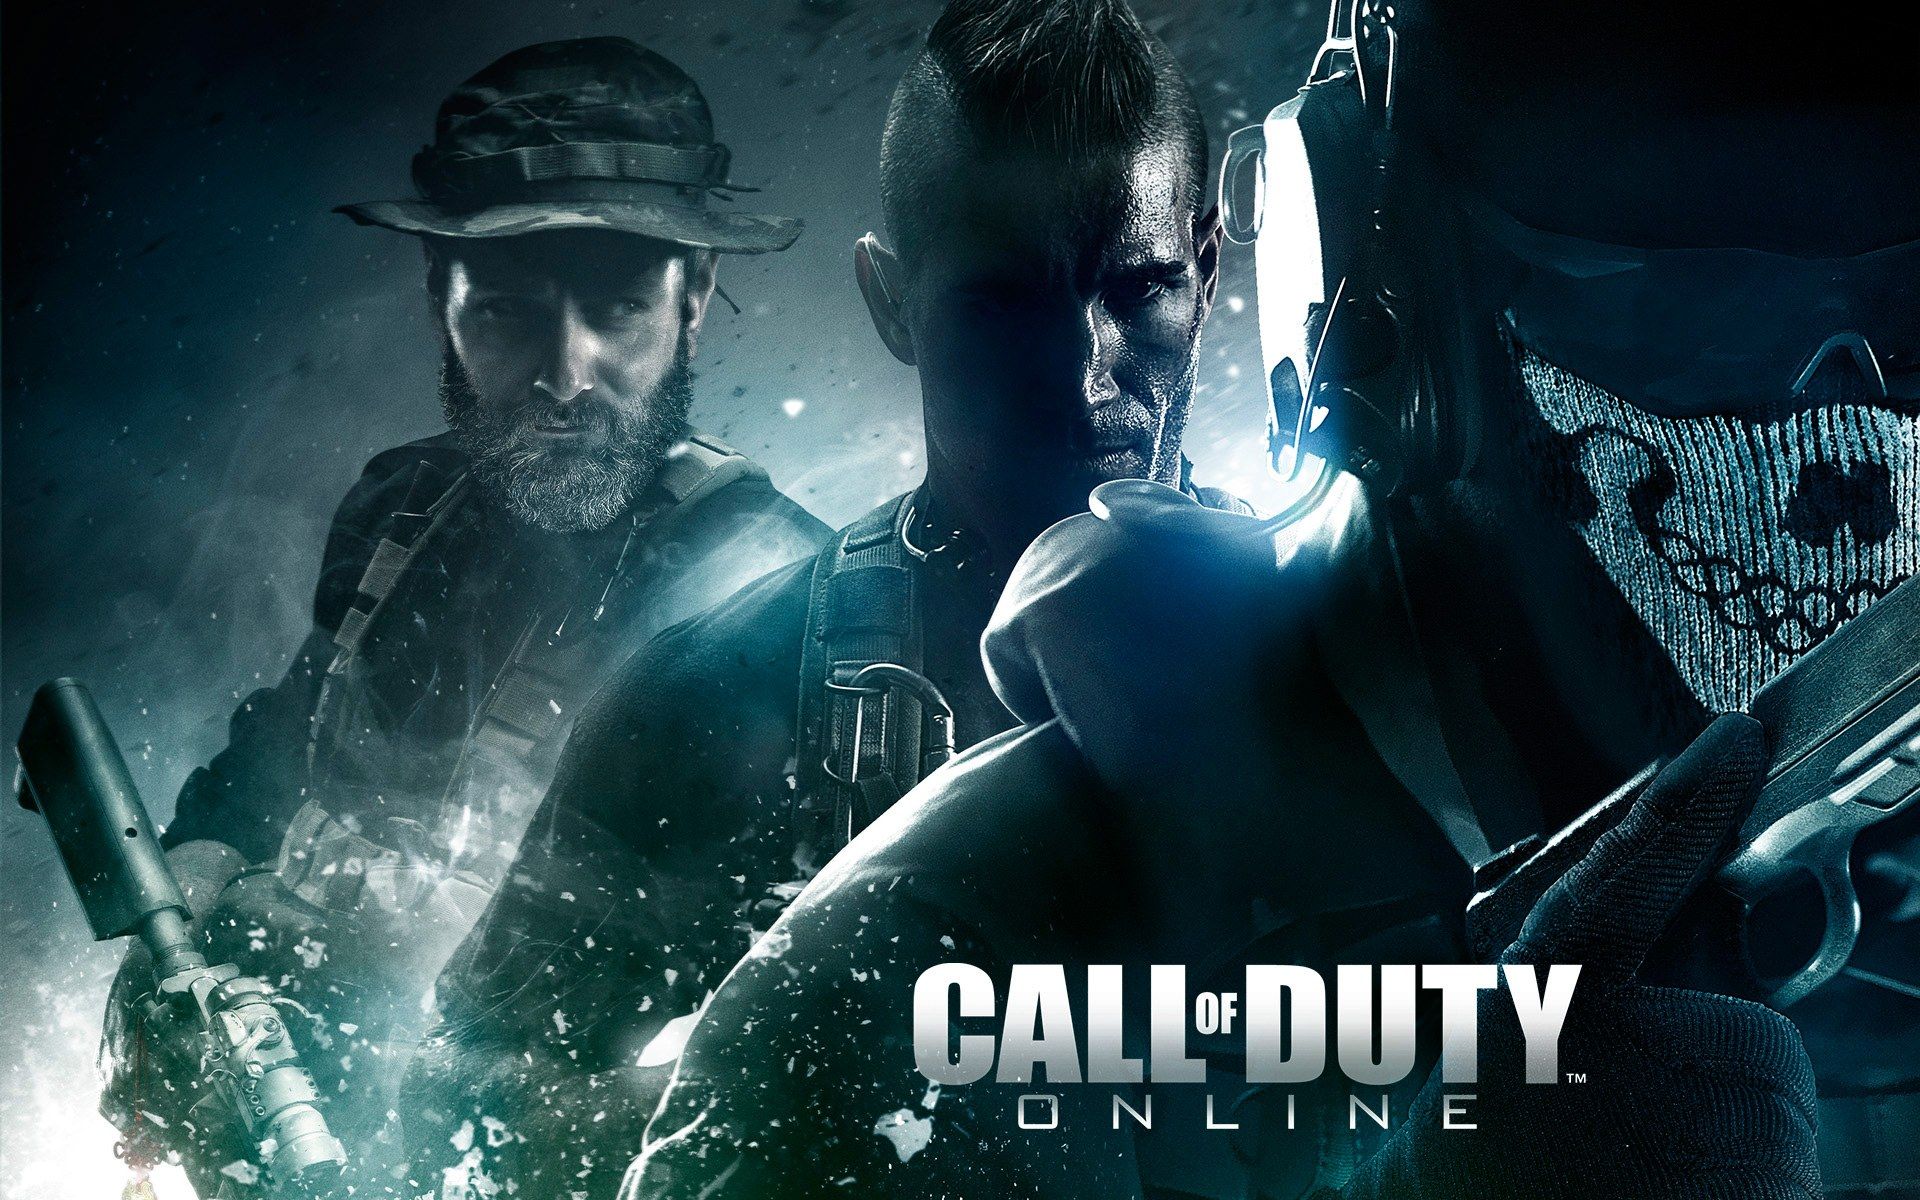 call of duty online mobile chine